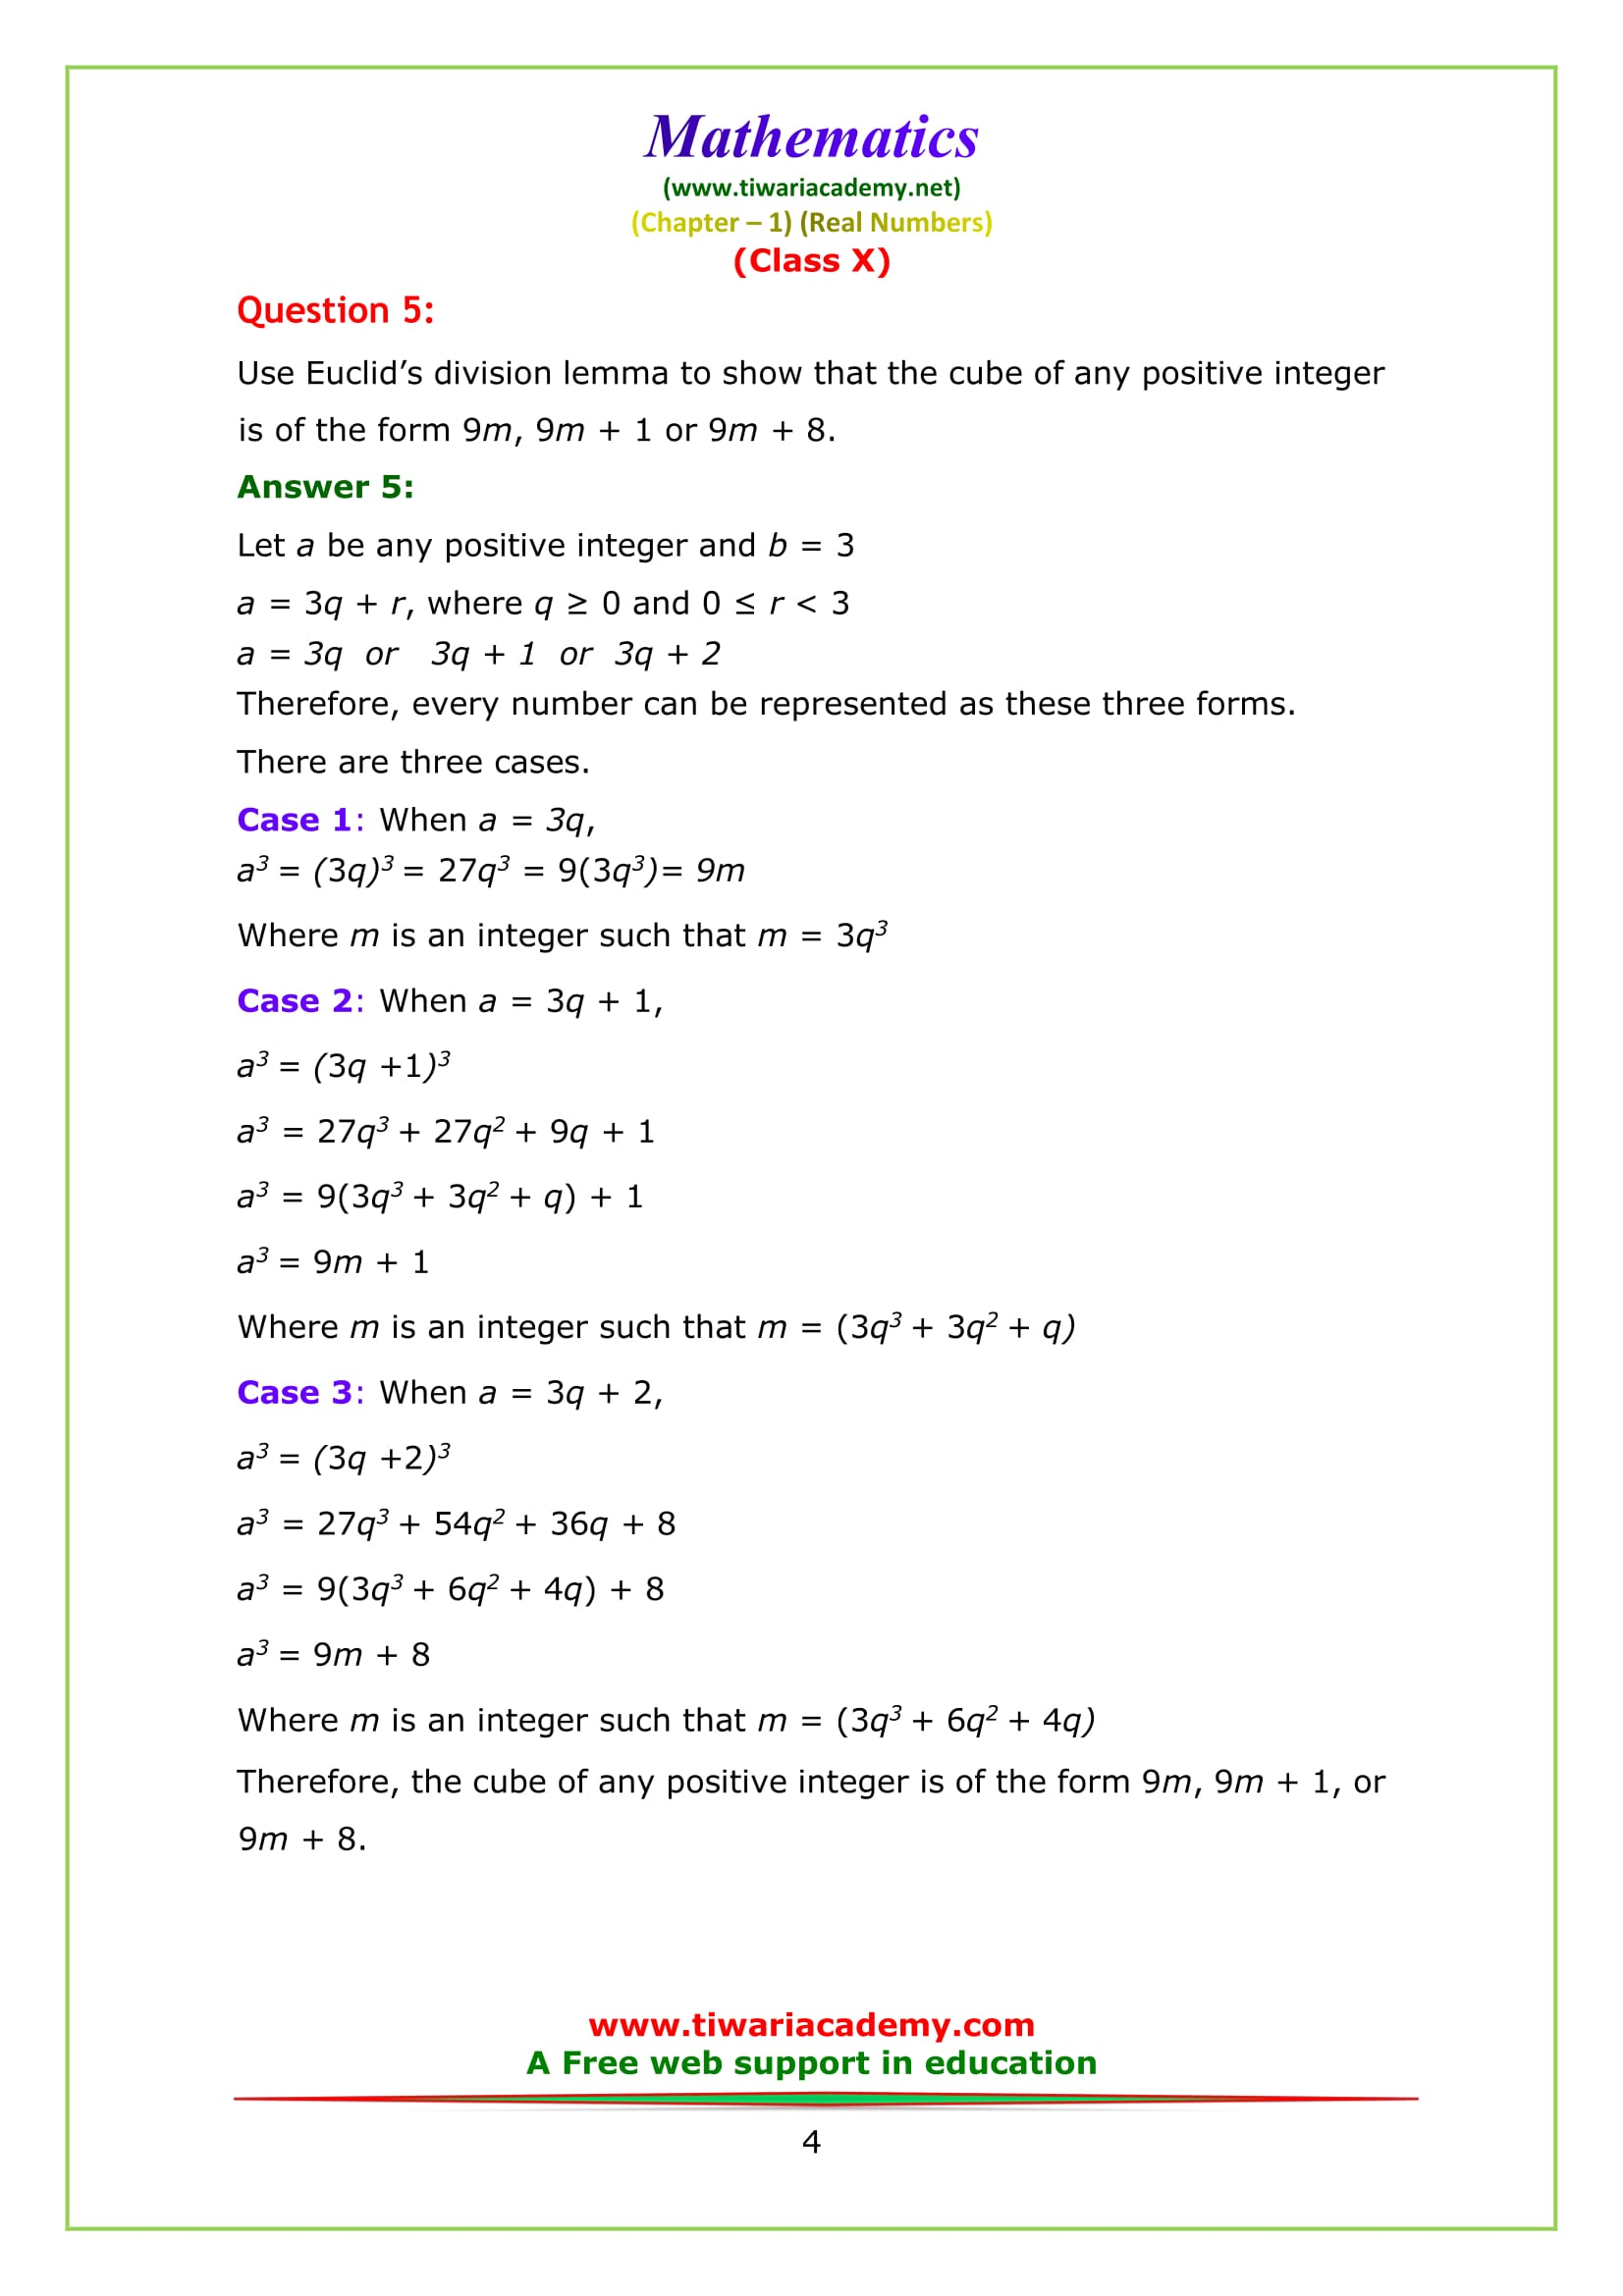 NCERT Solutions for Class 10 Maths Chapter 1 Exercise 1.1 Question 5